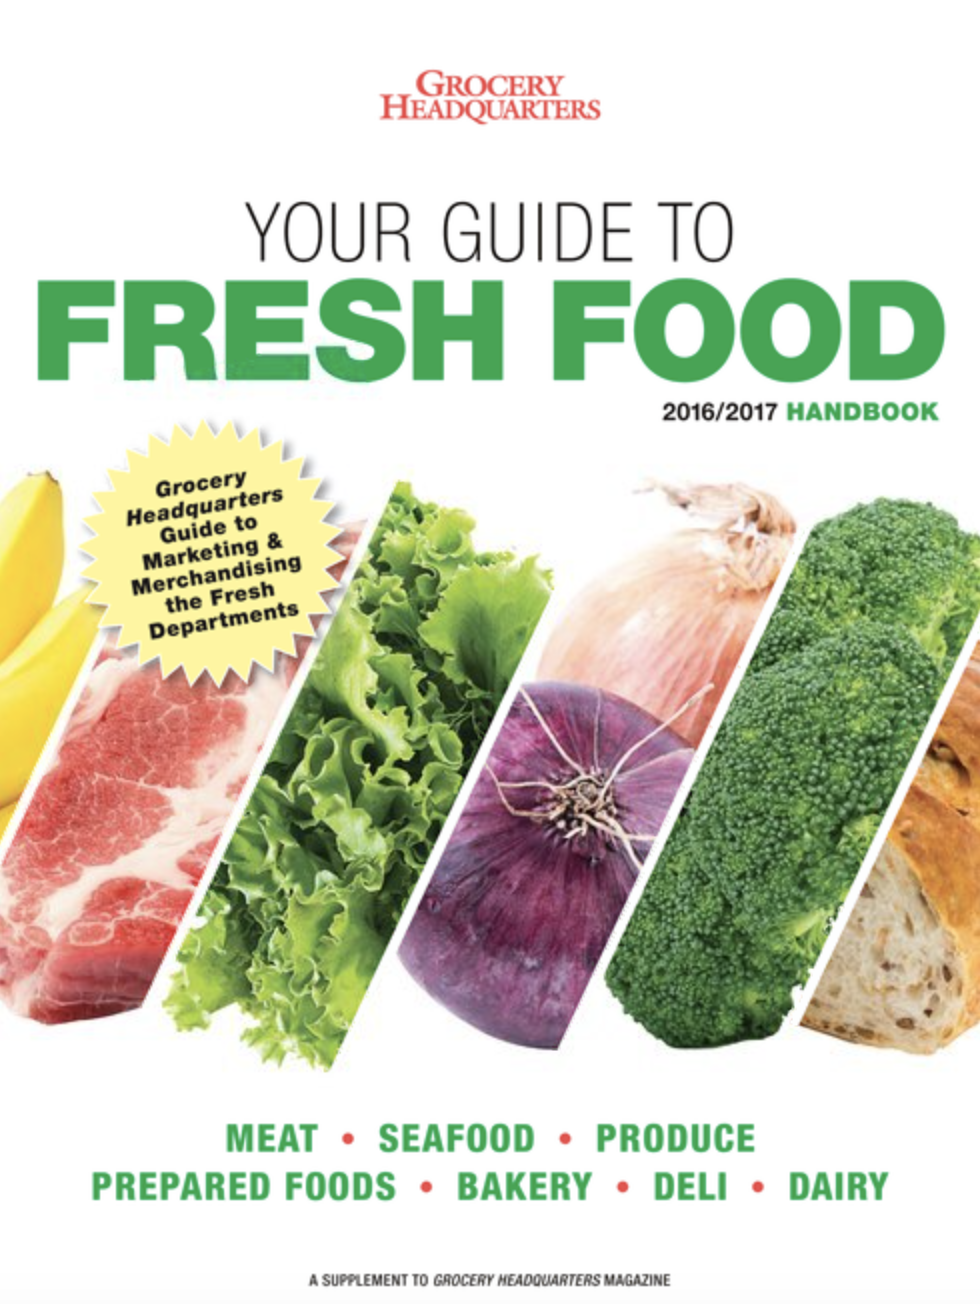 Winsight Grocery Business Magazine Fresh Food Handbook 2016-17 Issue